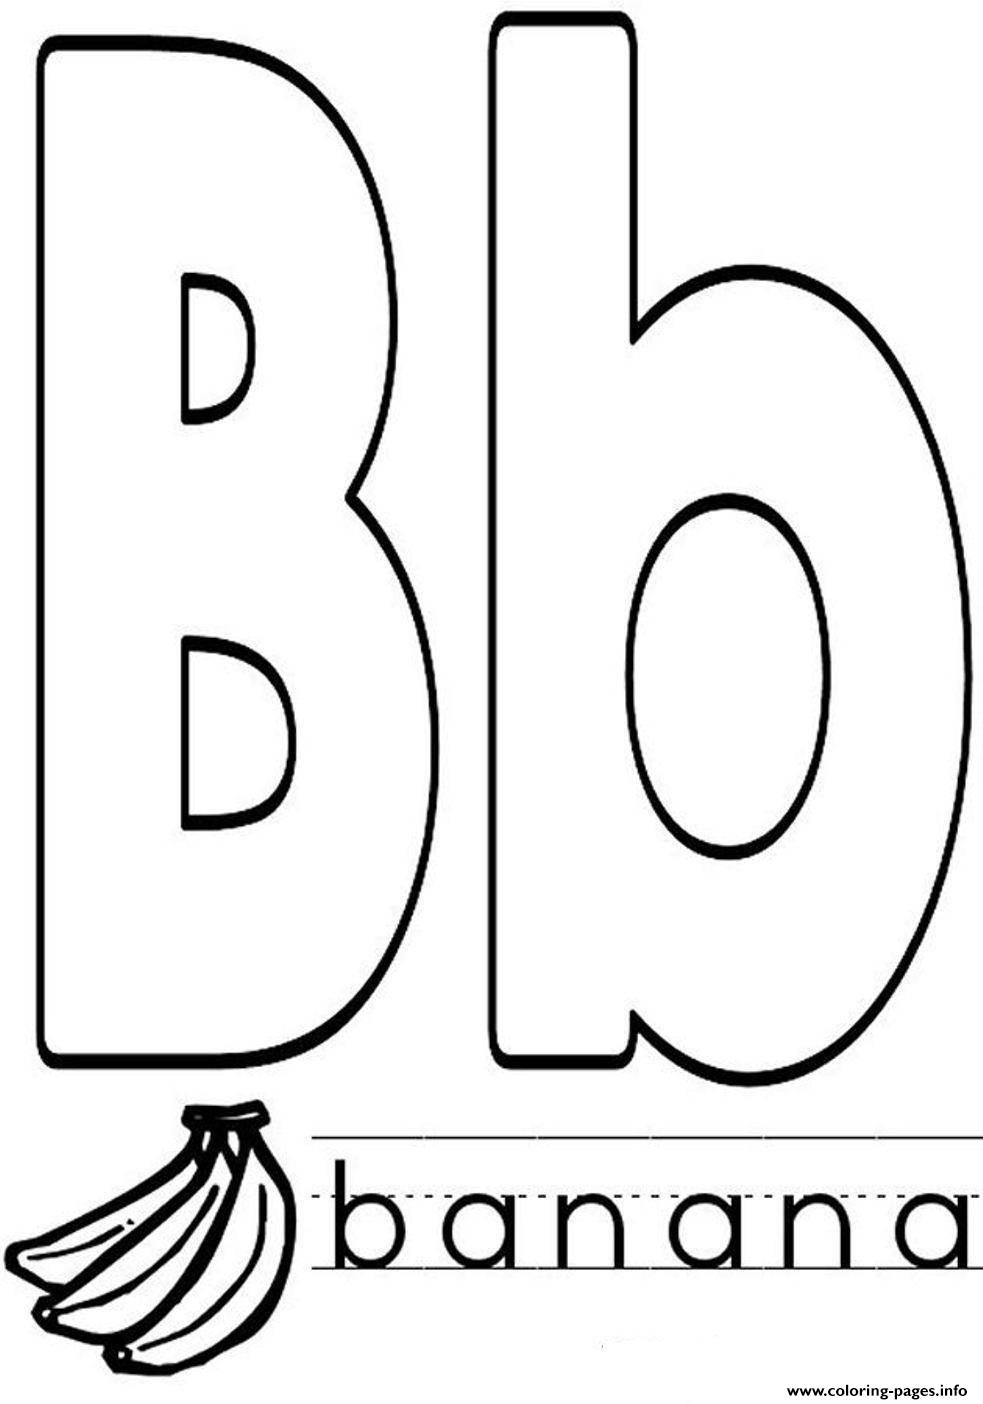 b coloring pages - photo #30